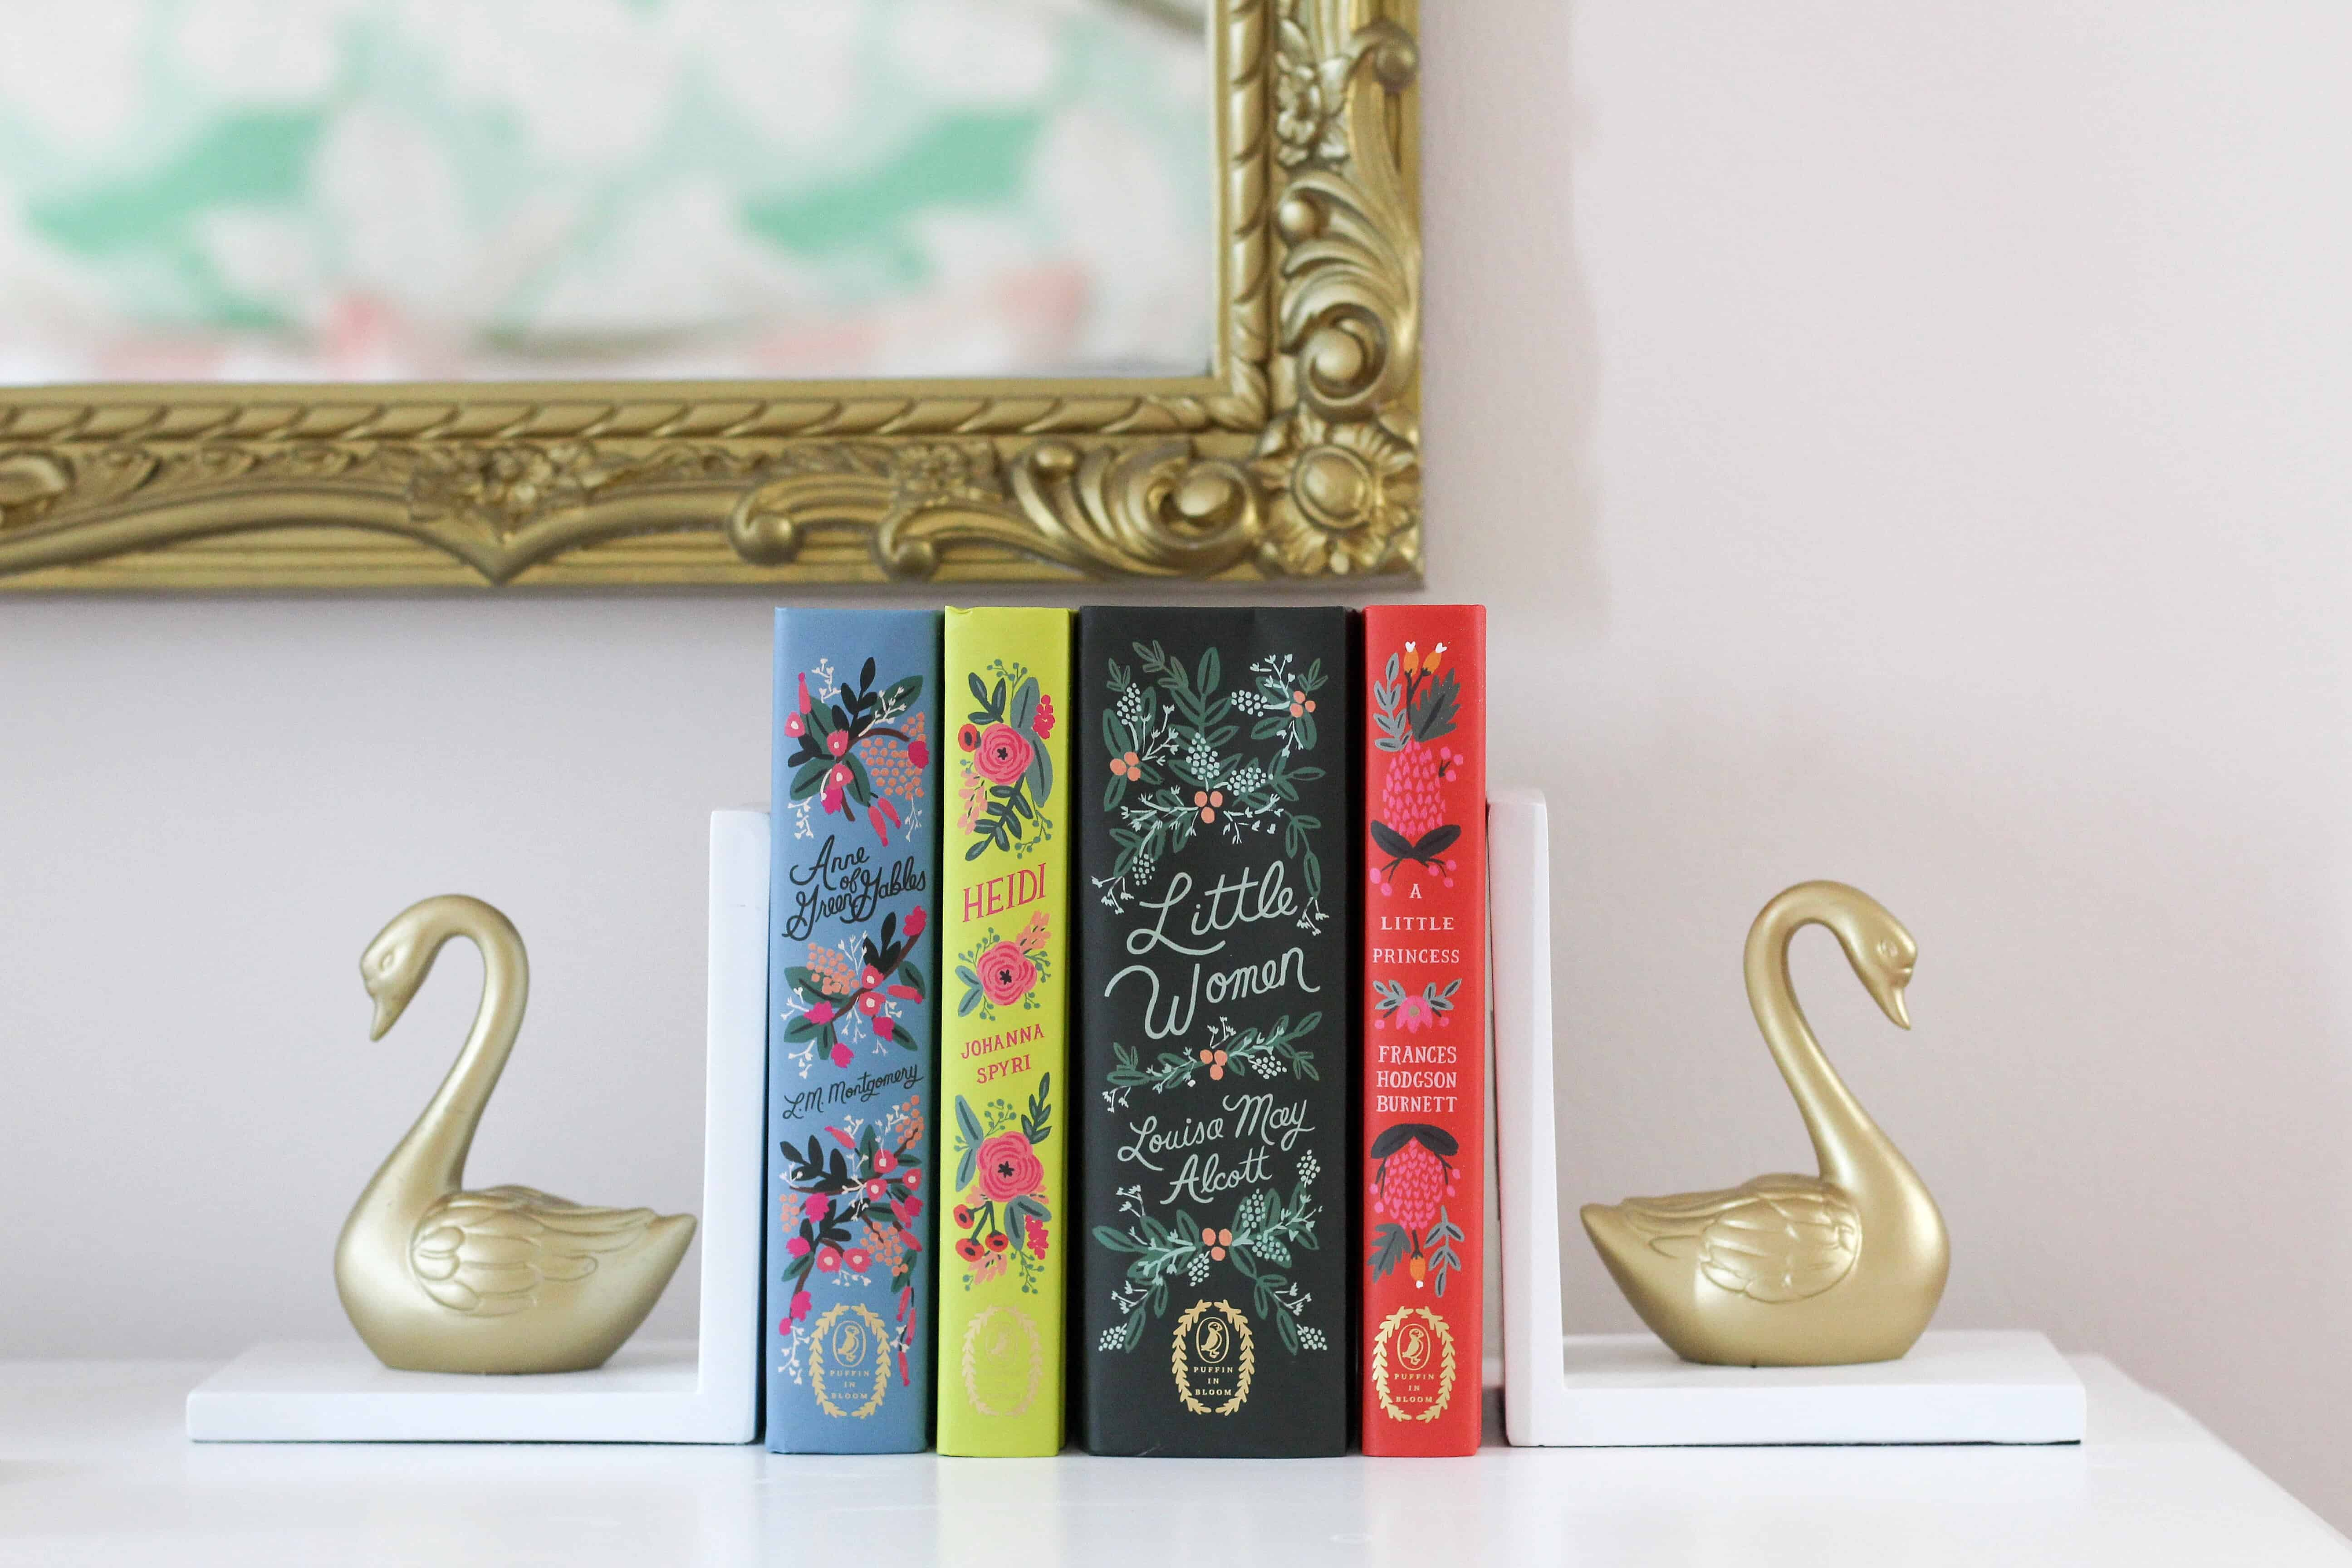 Classic books with rainbow cover